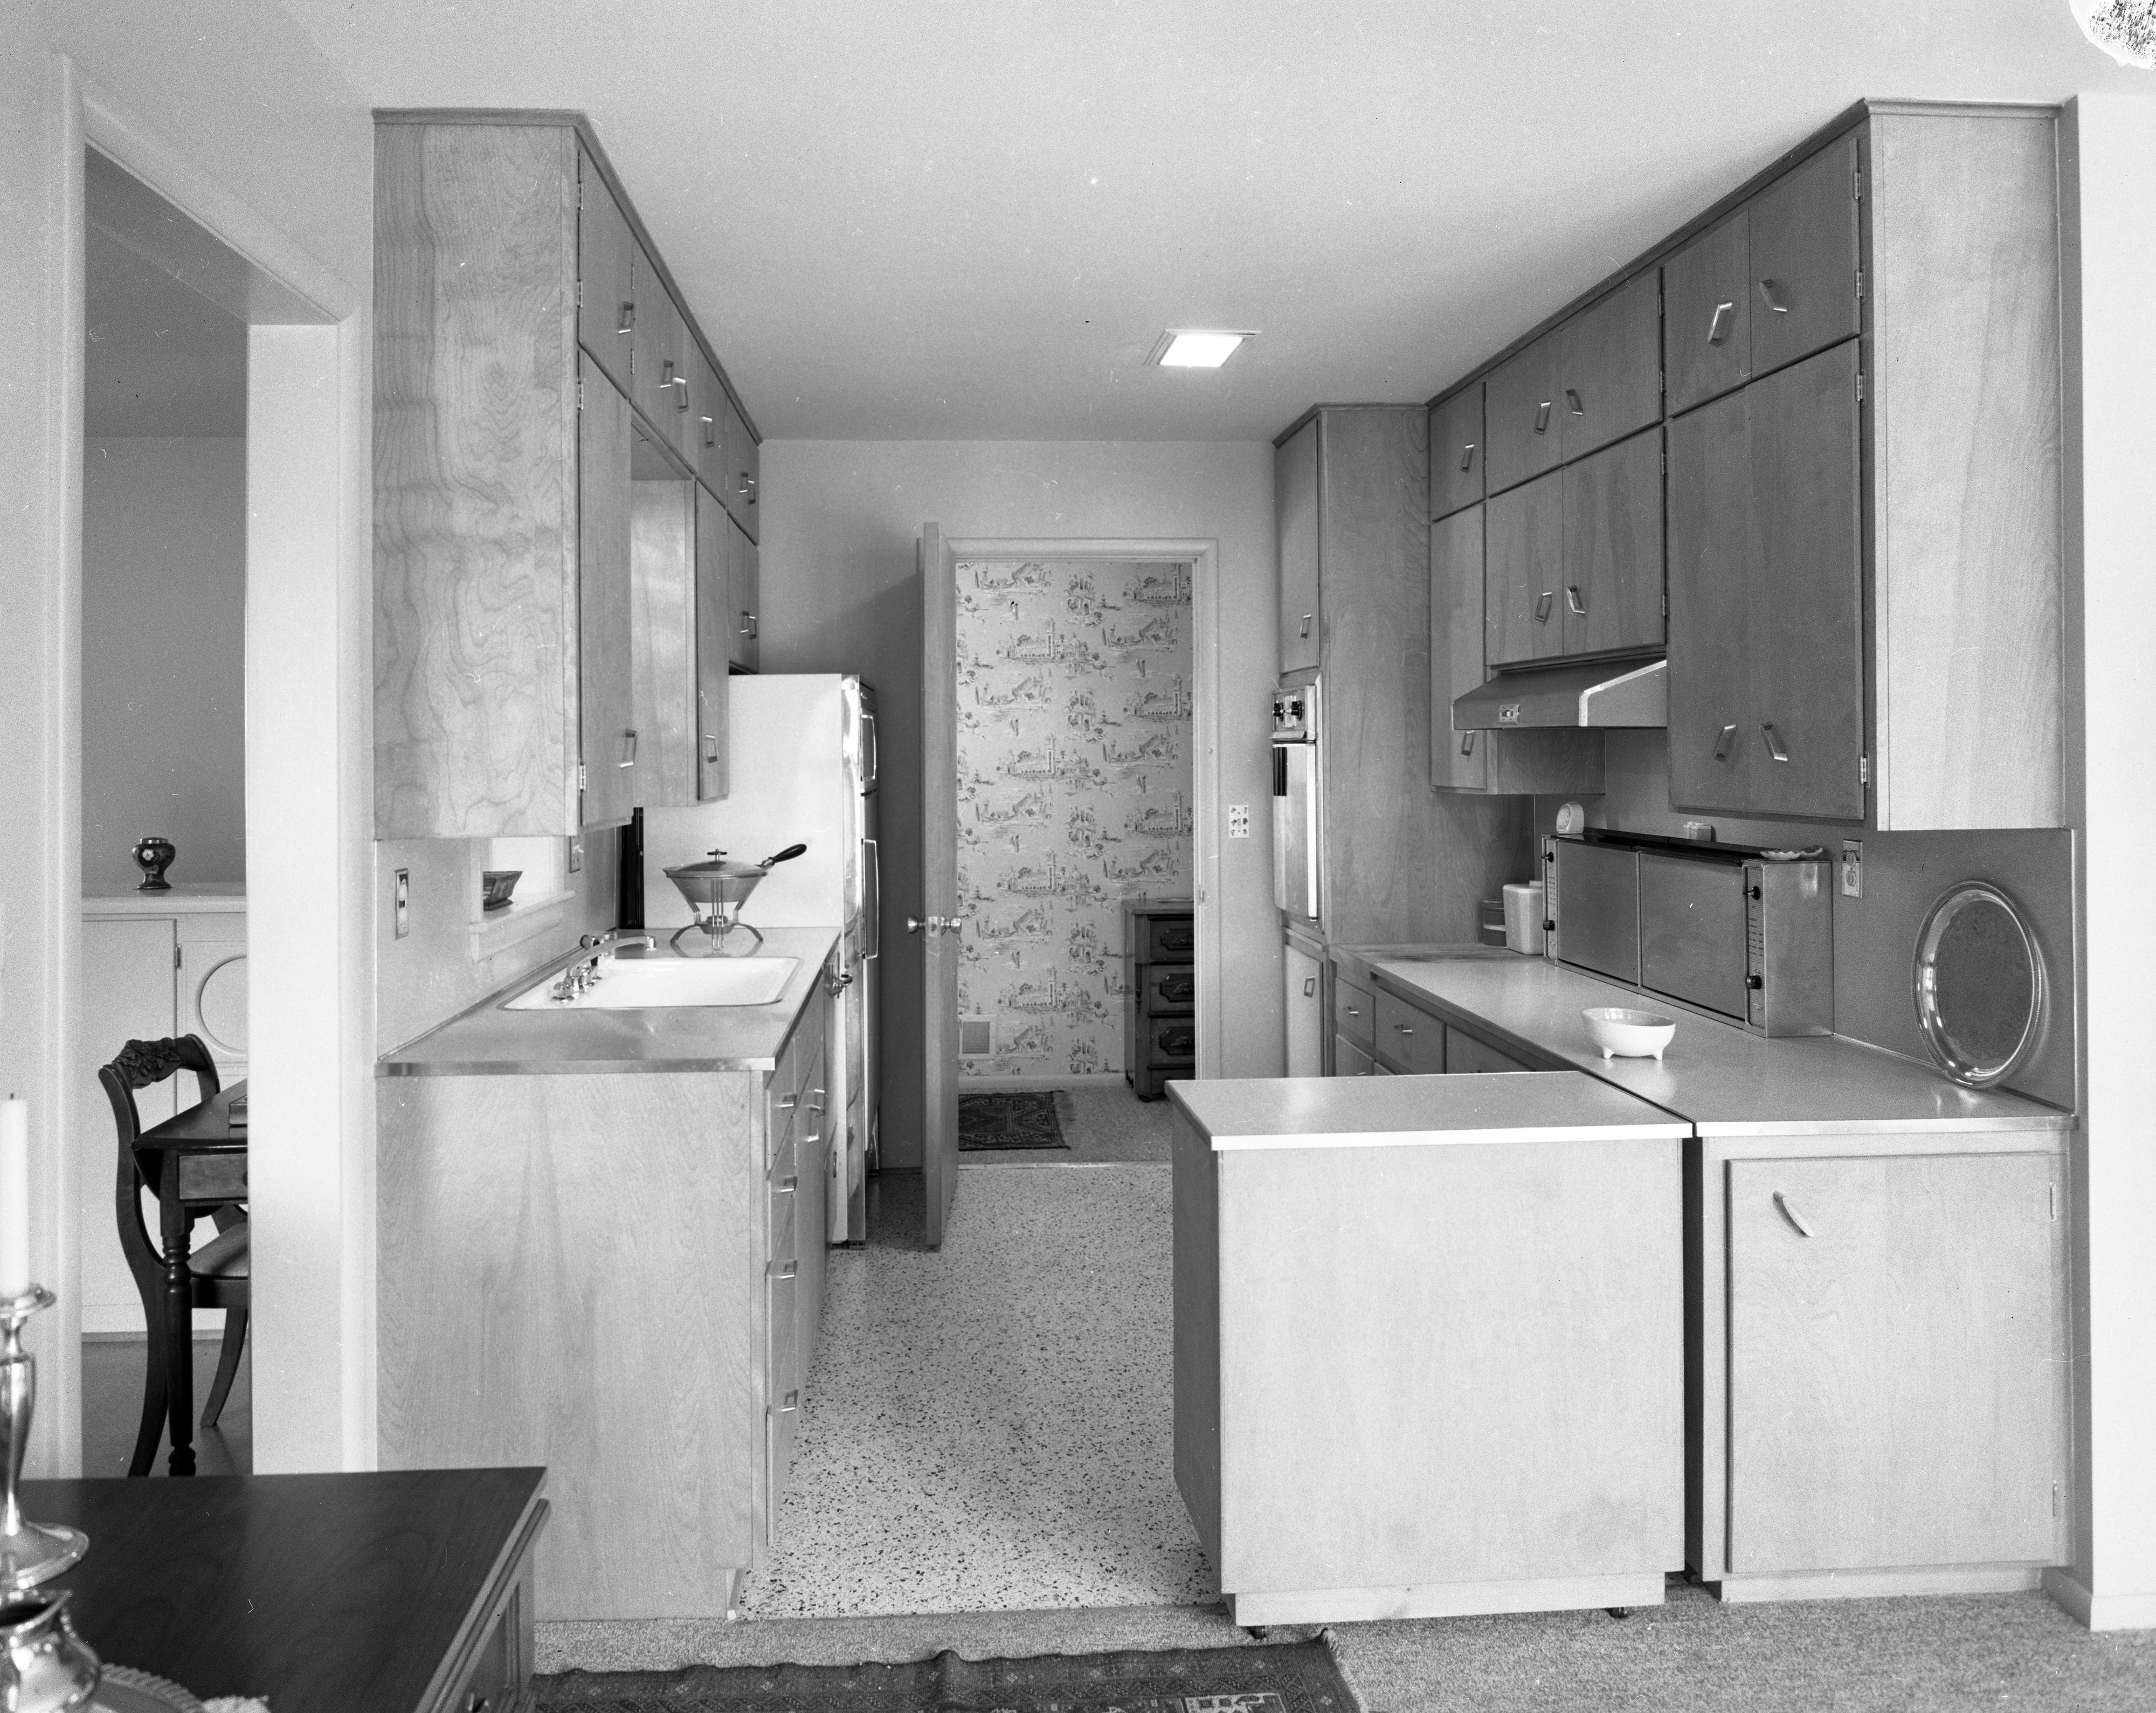 Kitchen of Cecil and Dama Creal Home On Cedar Bend Drive, April 1958 image